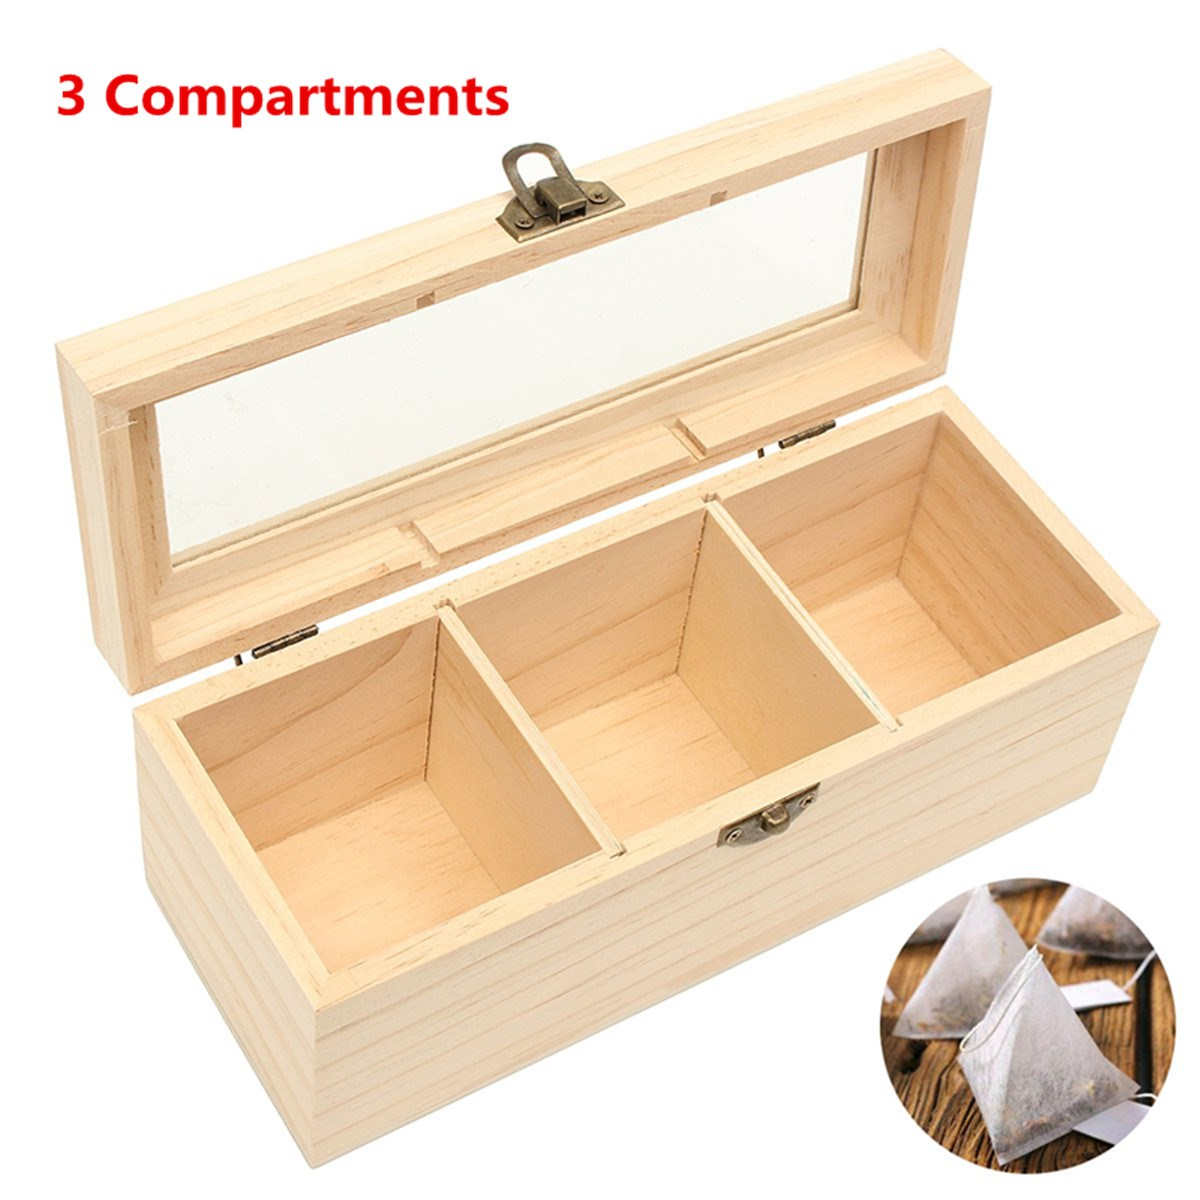 Wooden 3 Compartments Tea Box Antique Chest Tin Caddy Glass Lid Storage Container Home Kitchen Organizer Sundries Holder